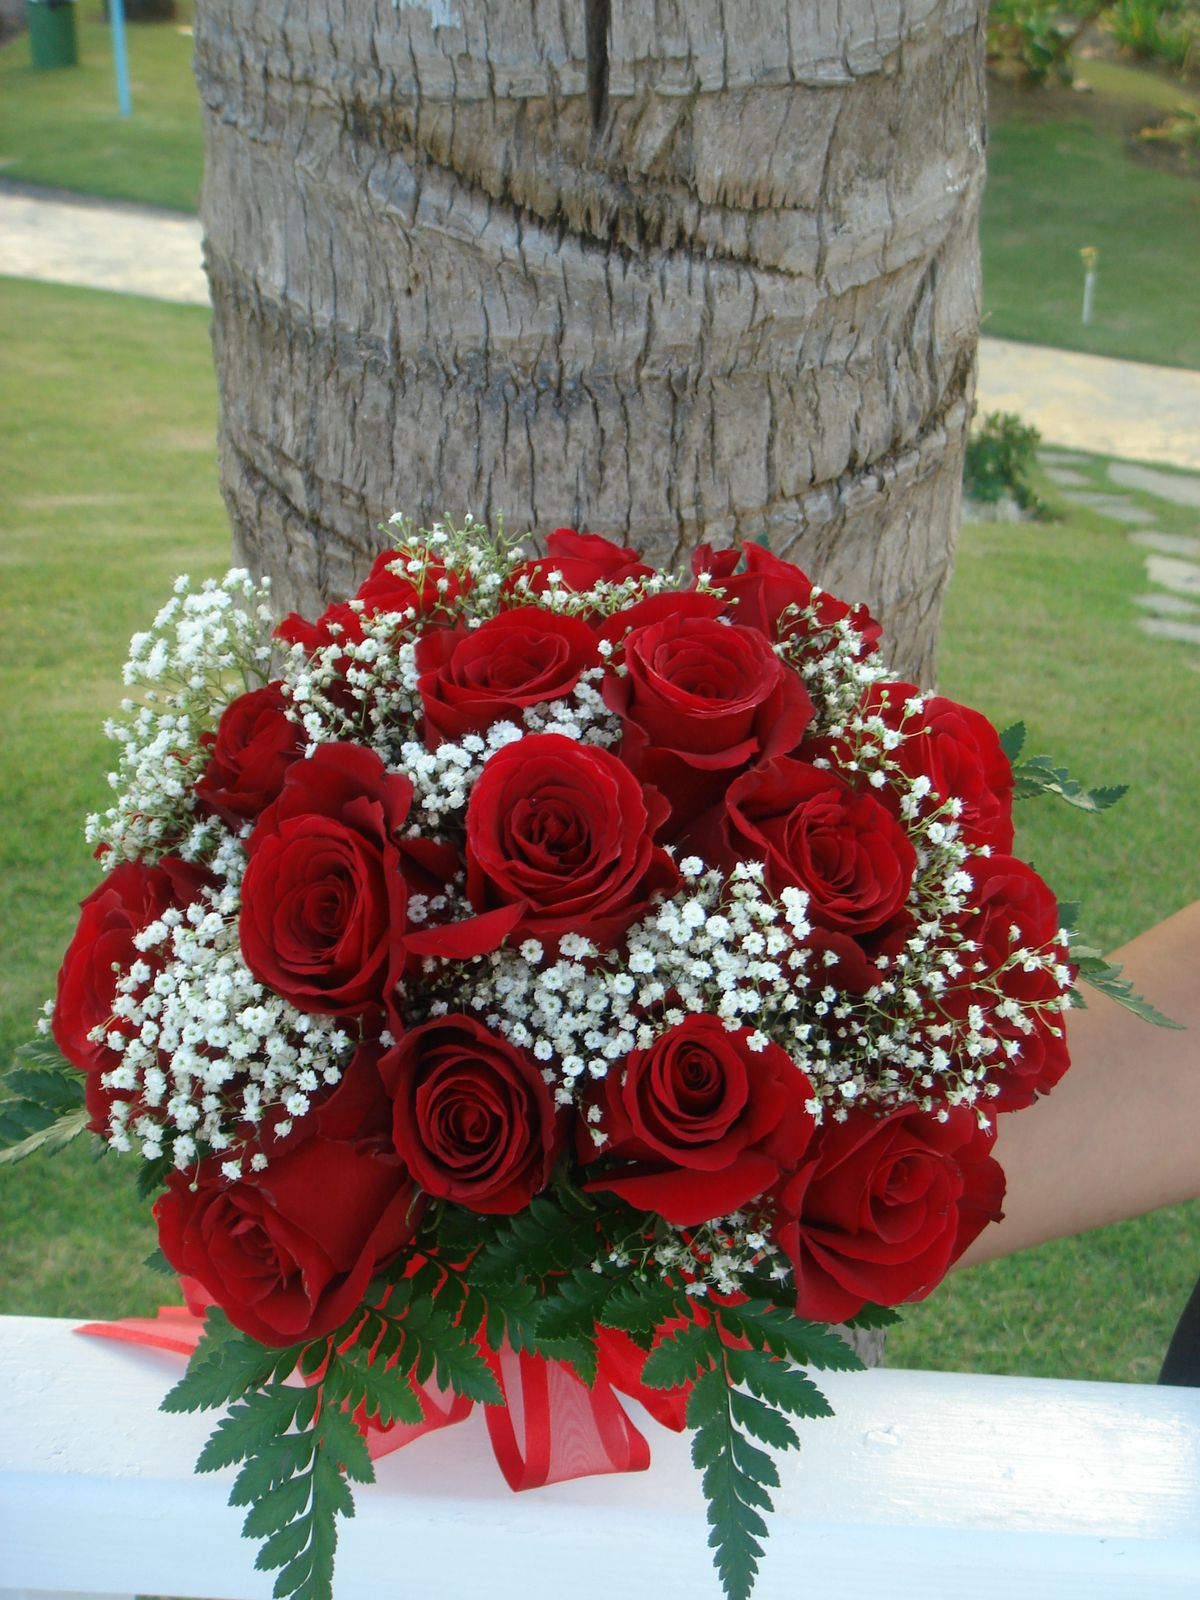 Bouquet Bridal: Red Roses and Small White Flowers Bouquet